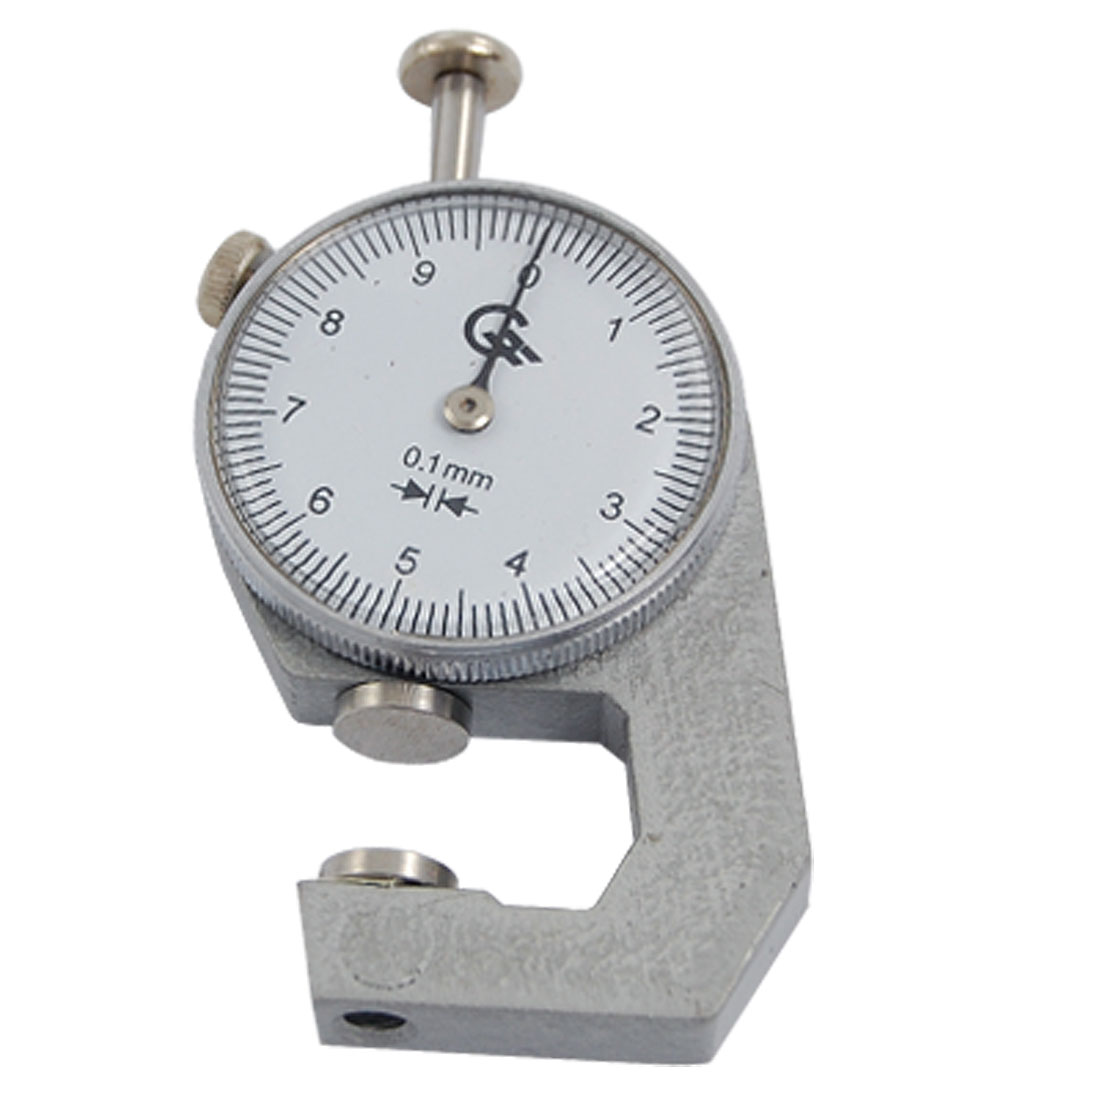 0 to 10mm Round Dial Thickness Gauge Gage Measurement Tool